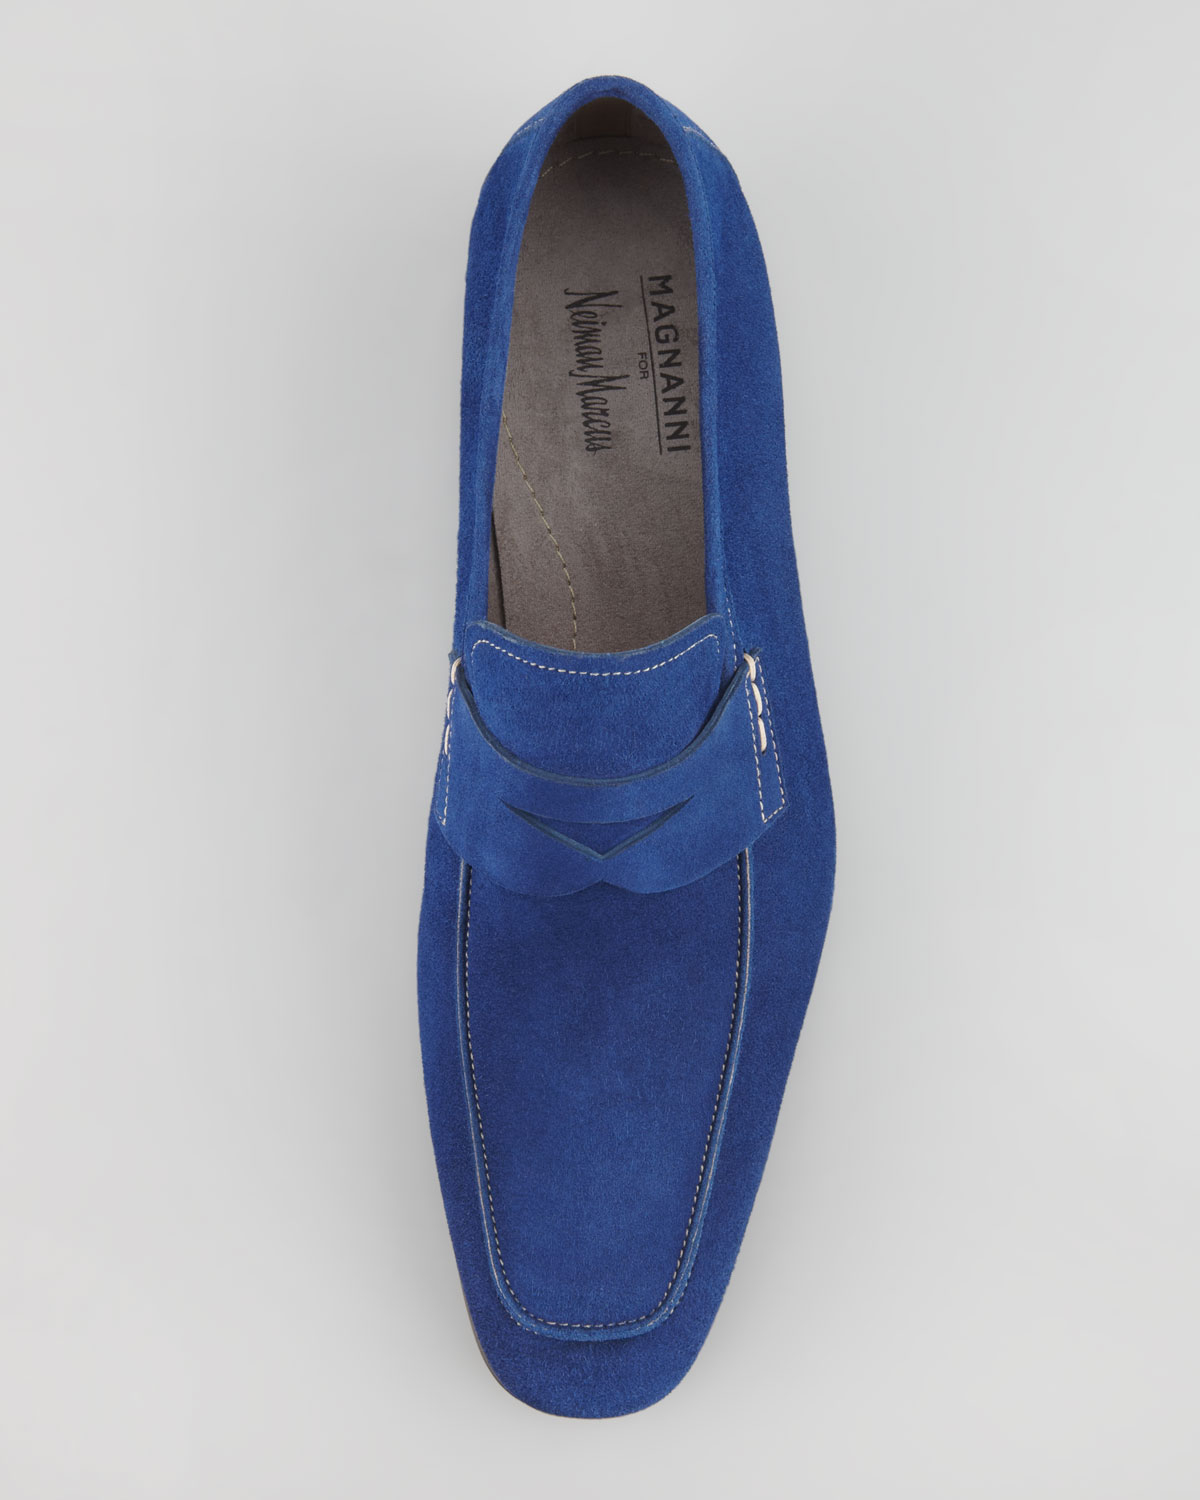 4694f267a6f Lyst - Neiman Marcus Suede Penny Loafer Royal Blue in Blue for Men